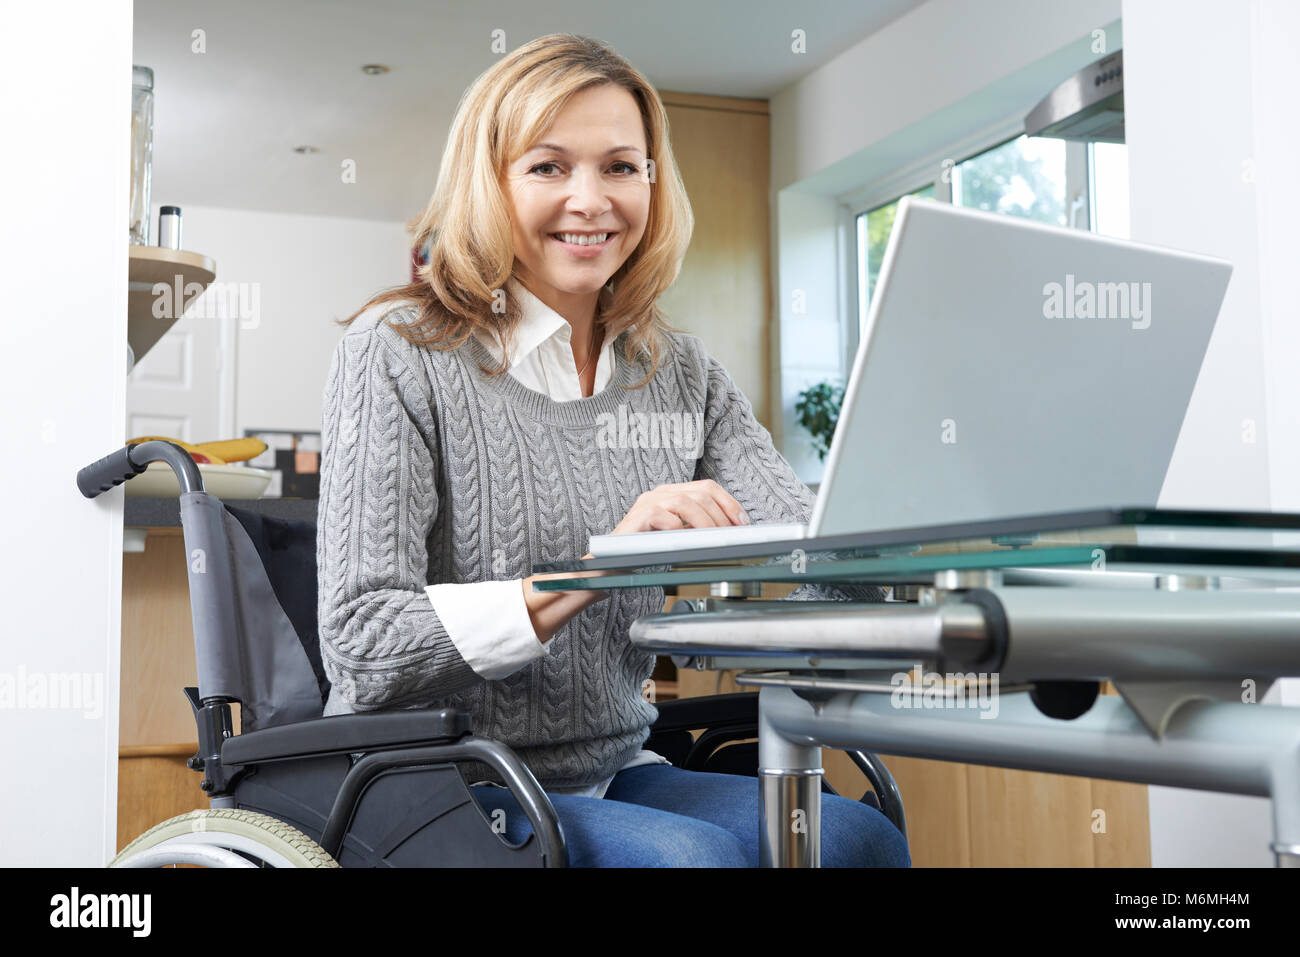 Portrait Of Disabled Woman In Wheelchair Using Laptop At Home - Stock Image